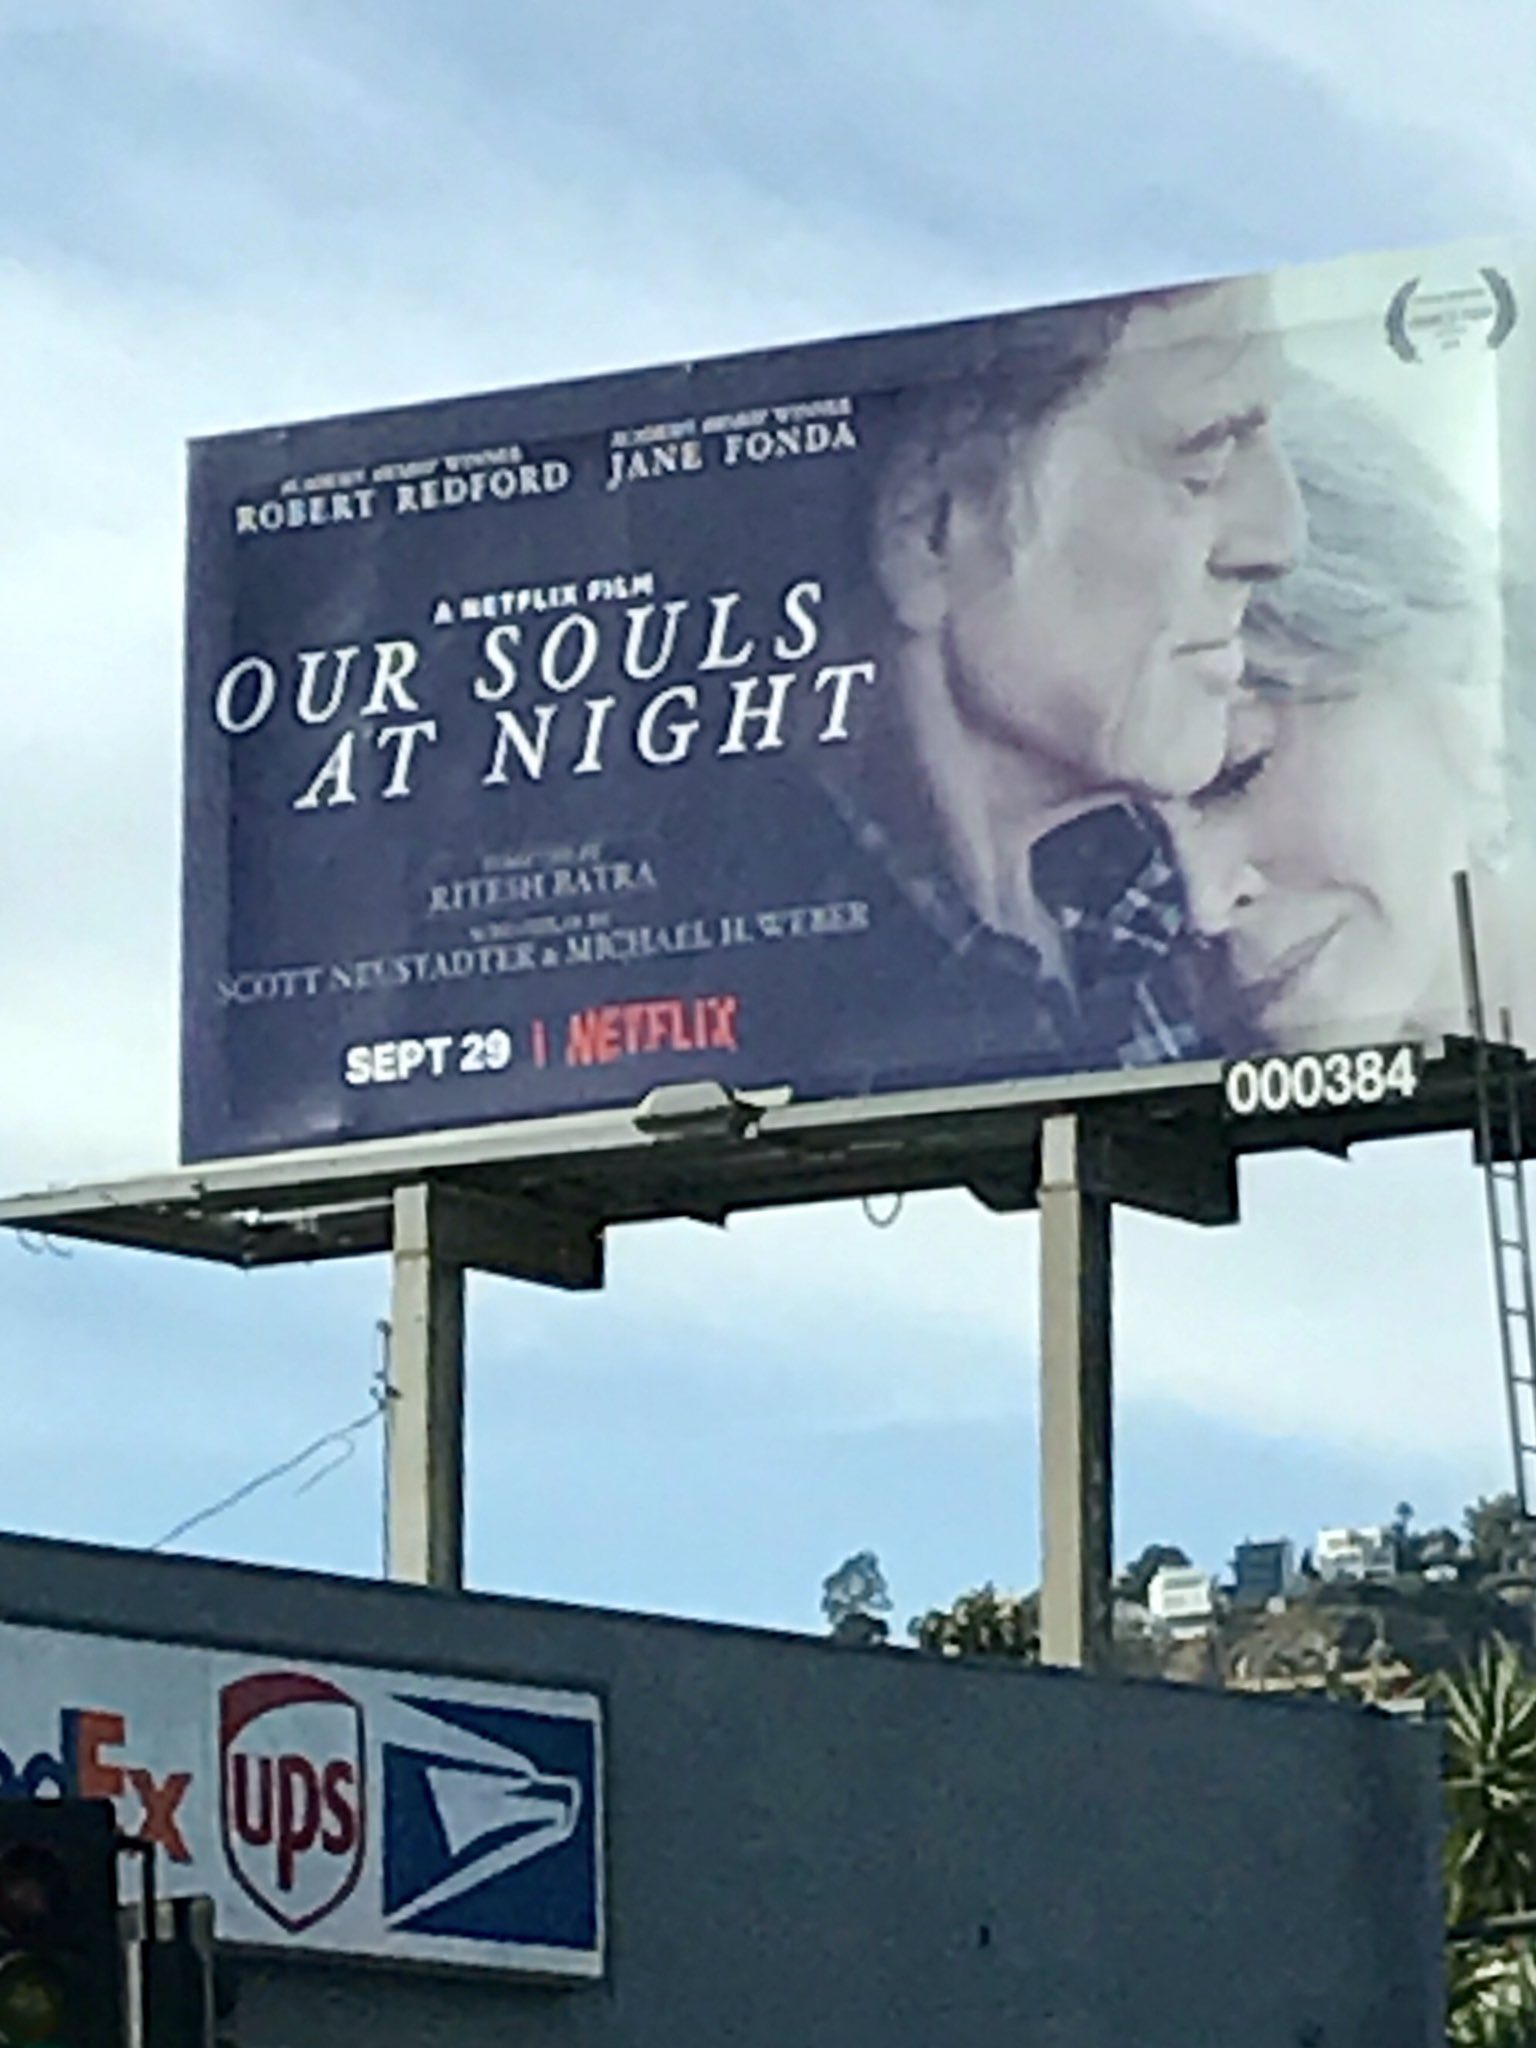 RT @FredrikSewell: Maybe it sounds more family friendly with an American accent. https://t.co/t4qgBXhfI8